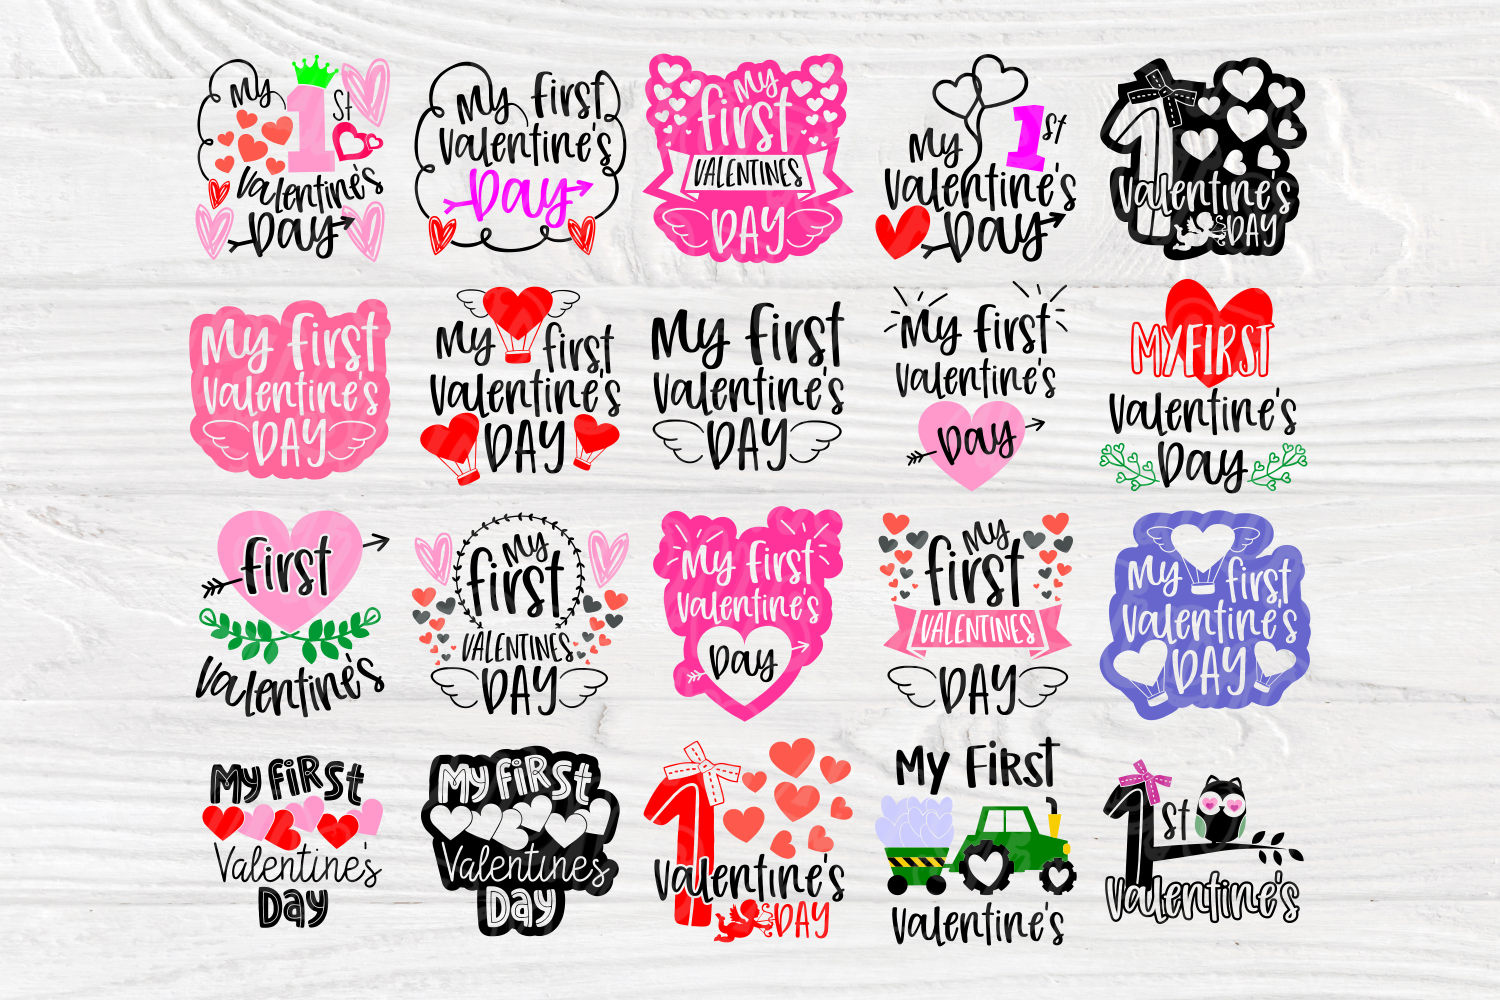 My First Valentine's Day | SVG Bundle | Valentines Quotes example image 2